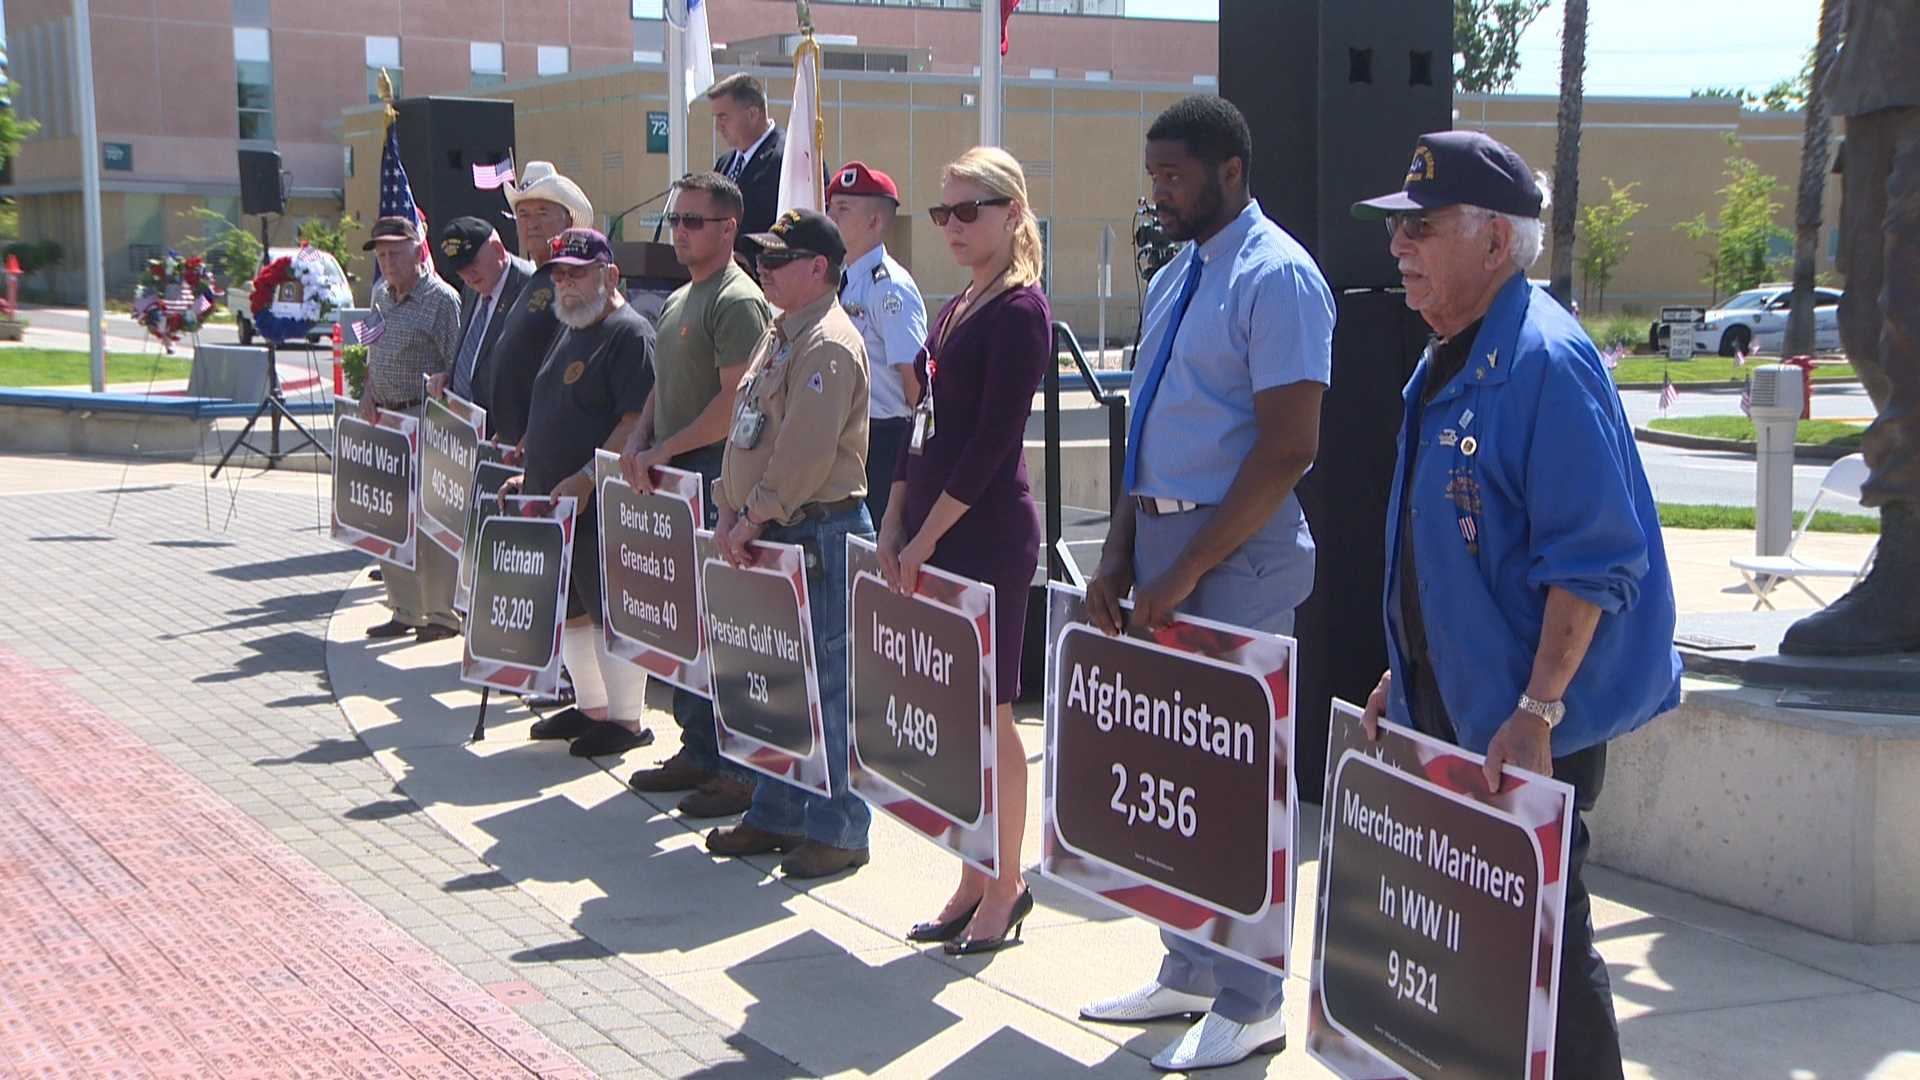 Fallen heroes and veterans were recognized Monday, May 30, 2016, during a Memorial Day event at Mather Air Force Base.